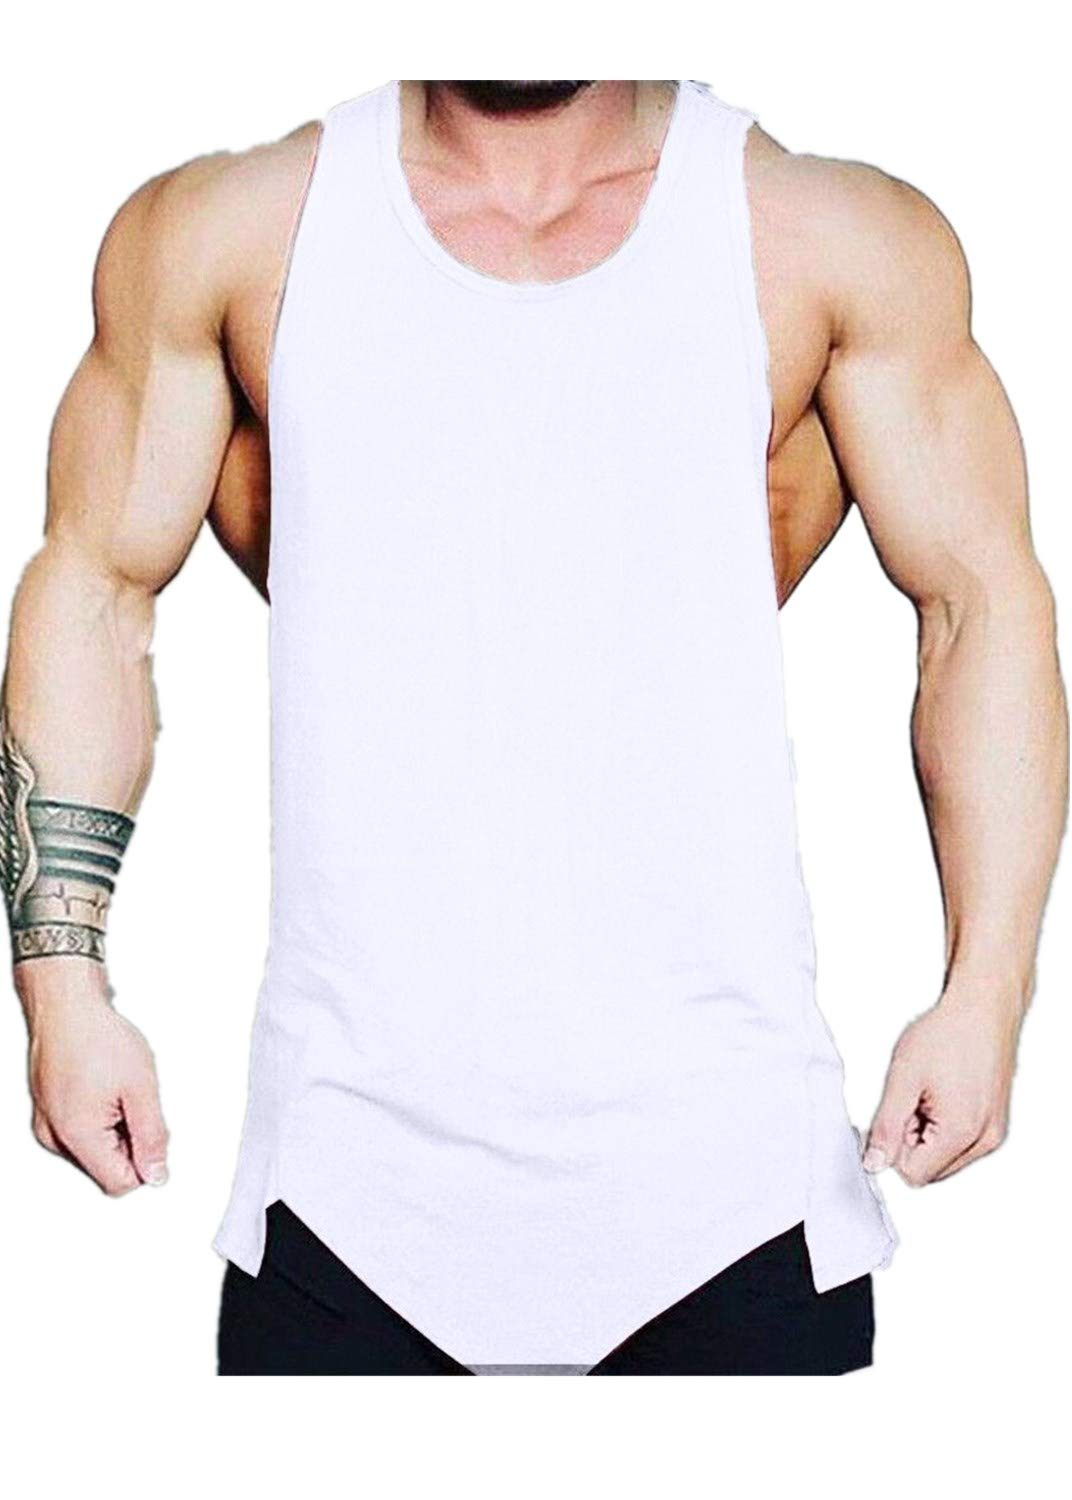 Men Vest Shirts Irregularity Casual Sport Pure Color Tanks Tops Sleeveless Tee Blouse (L, White)